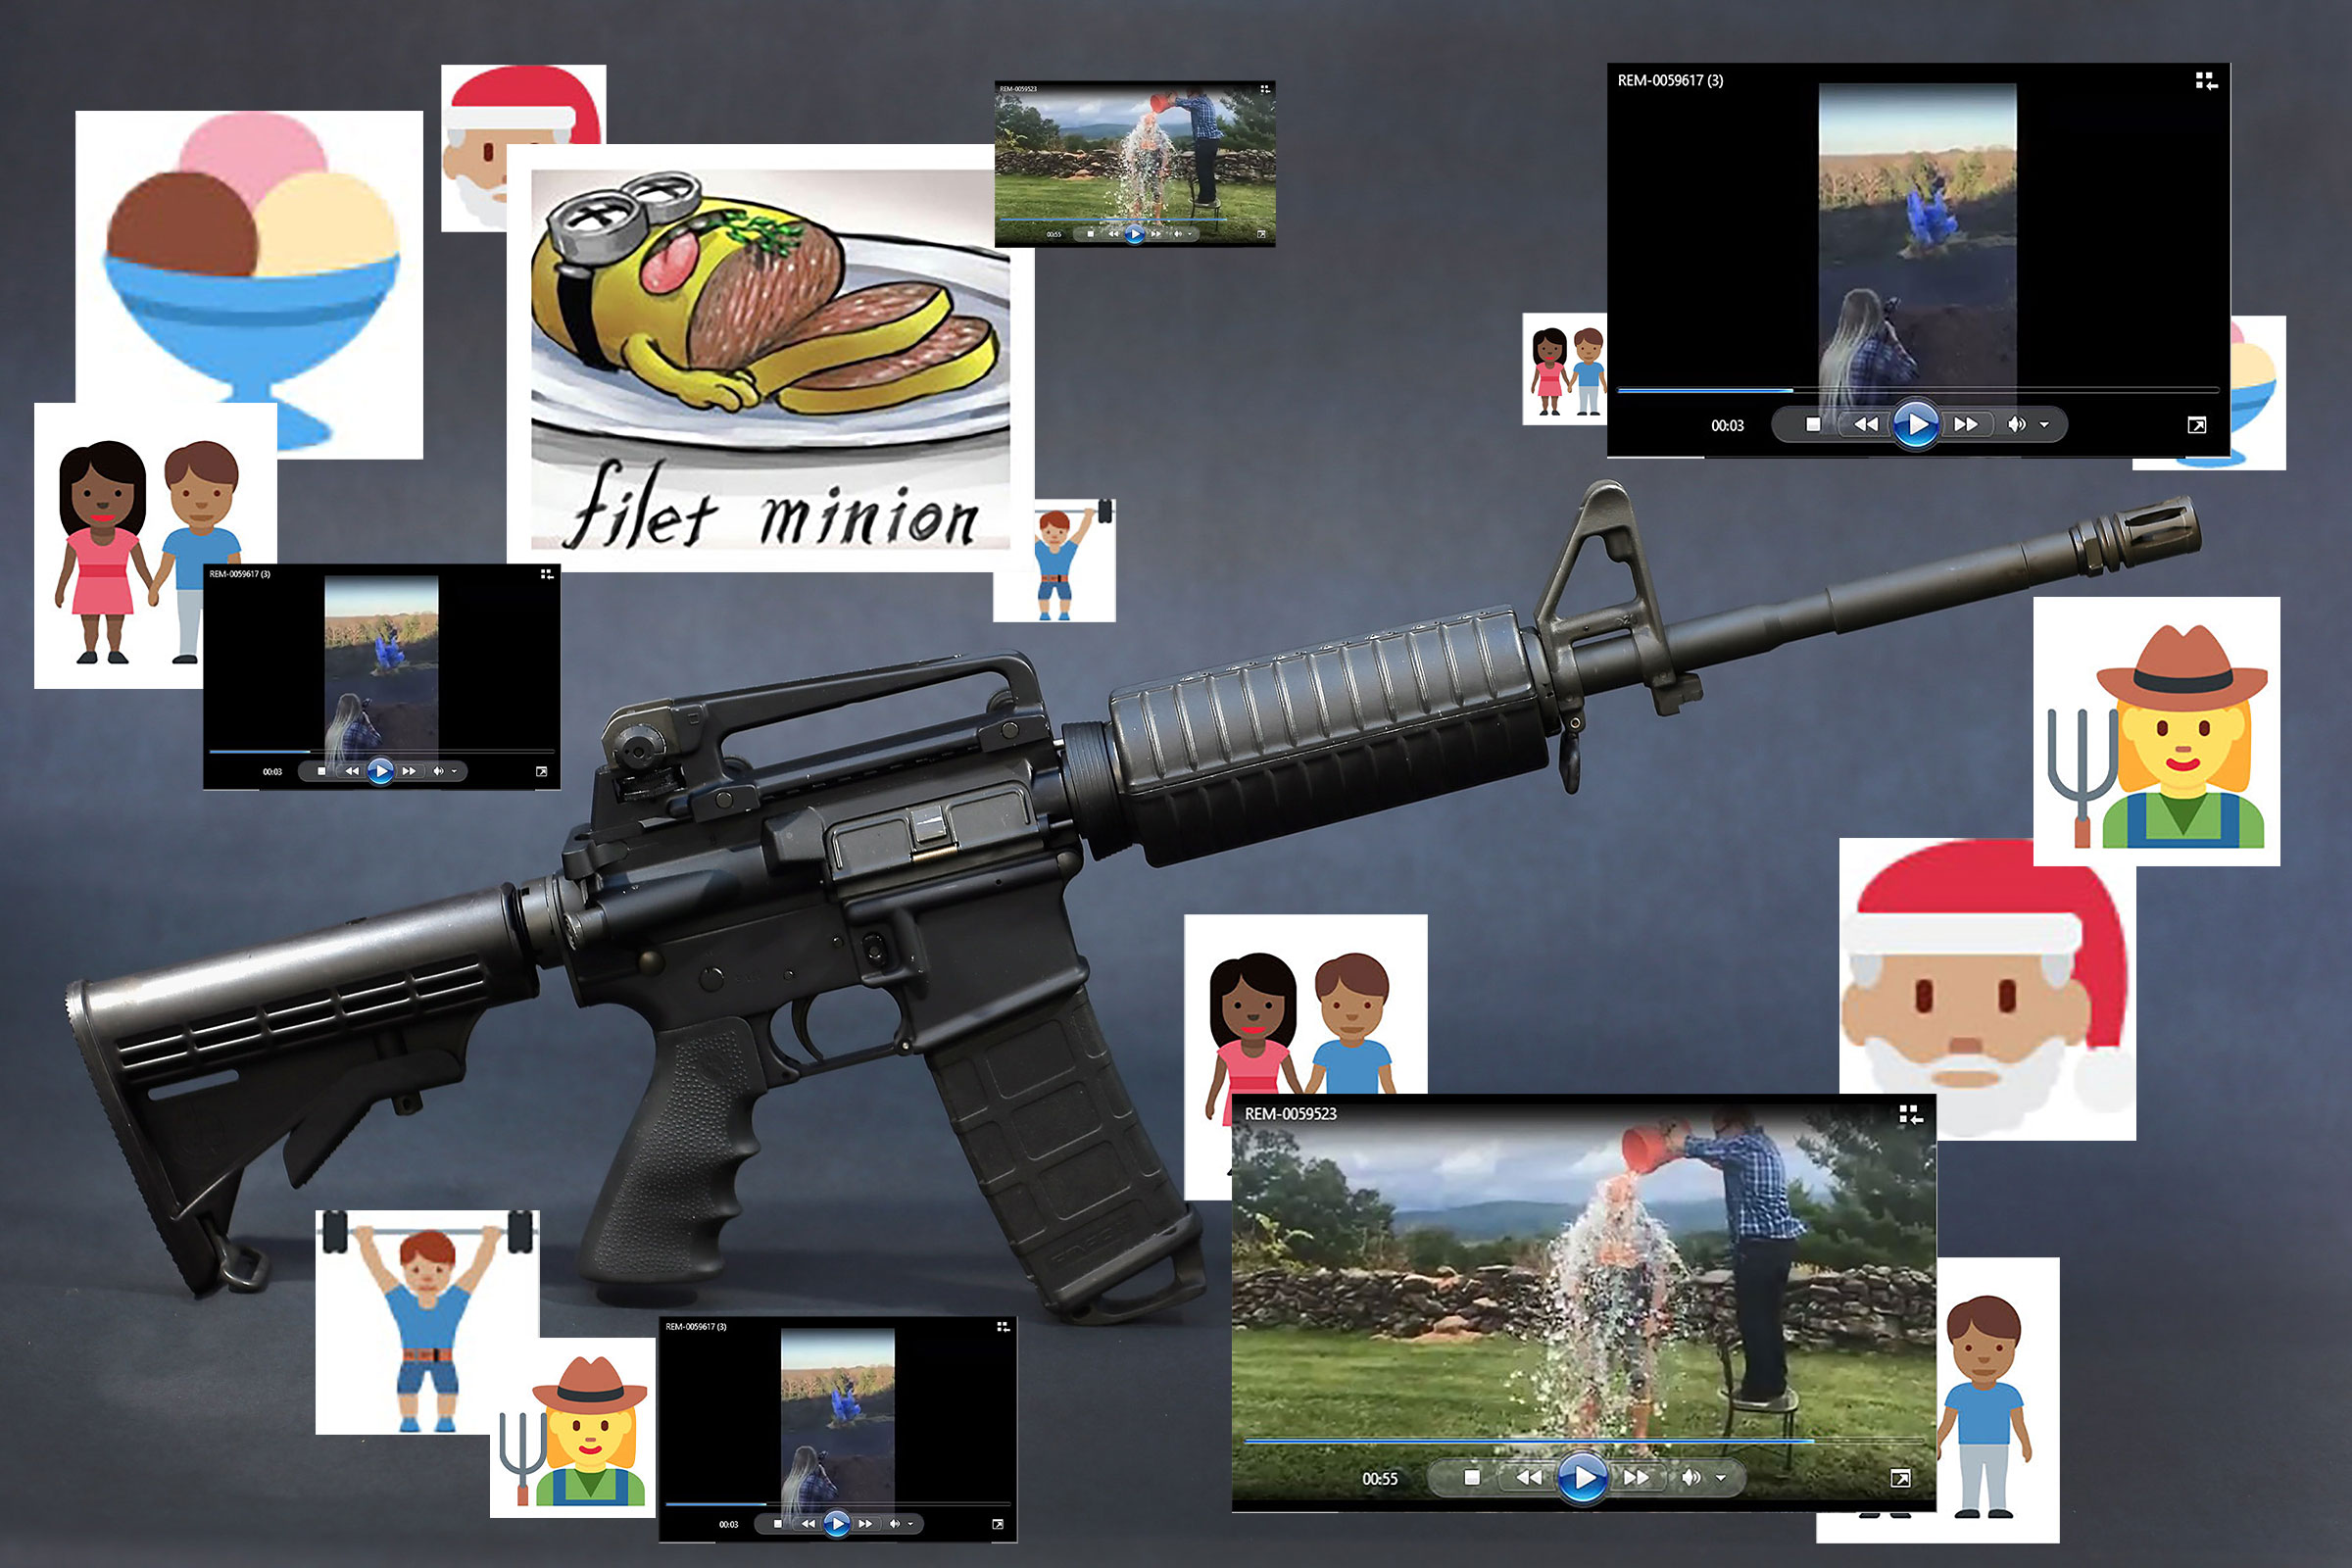 The Bushmaster AR-15 was used during a massacre at an elementary school in Newtown, Connecticut.